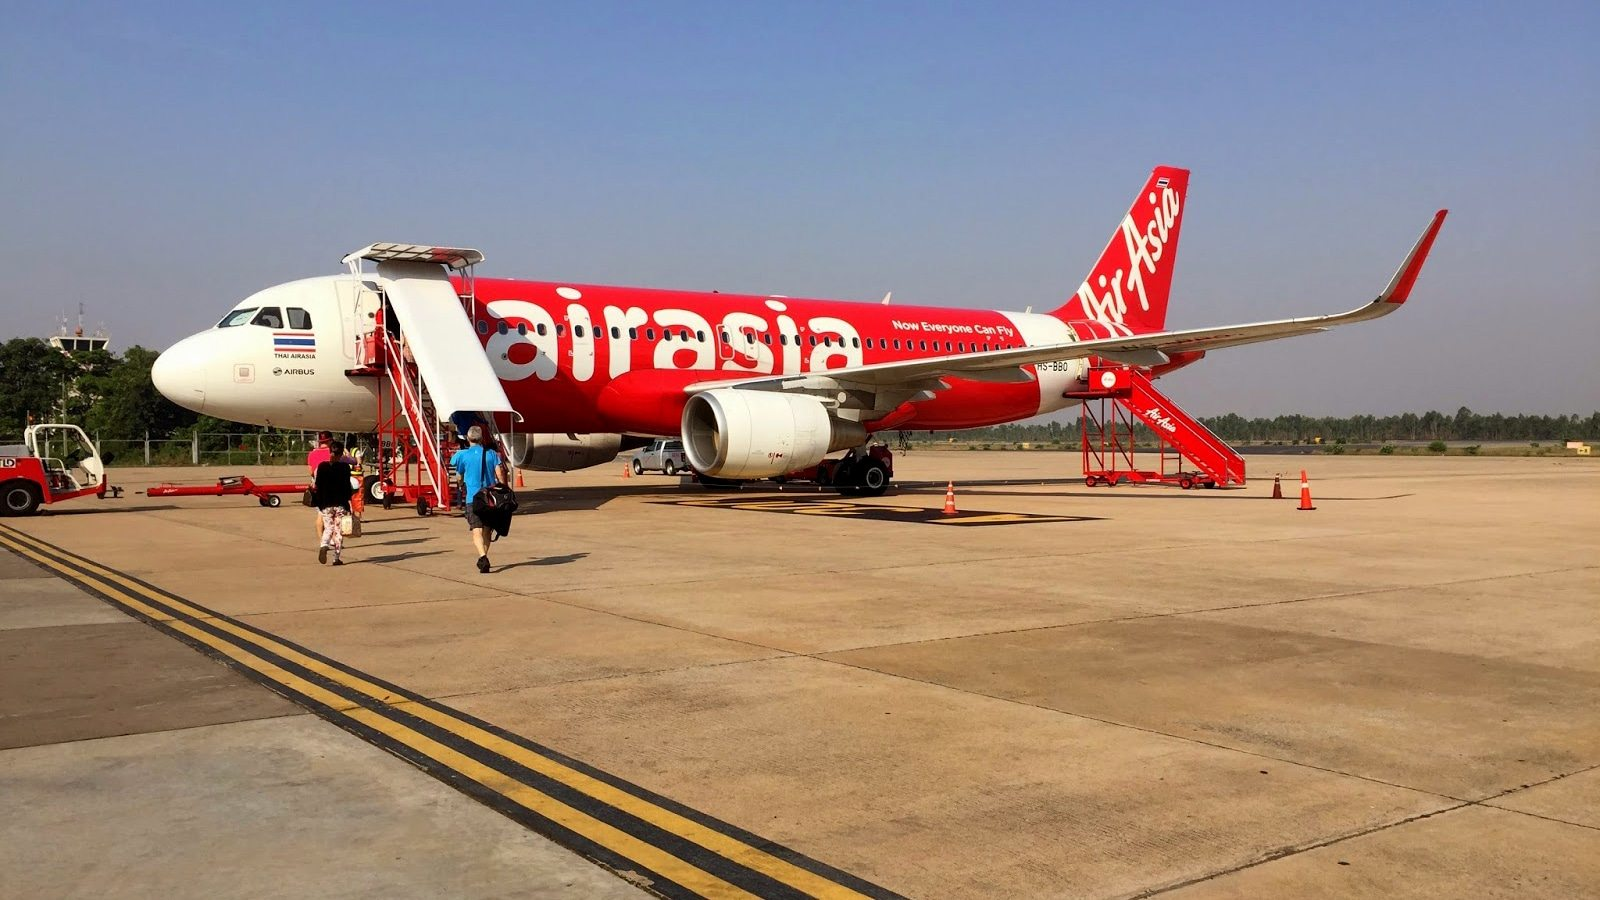 Hua Hin and Khon Kaen to get extra flights from Air Asia | The Thaiger